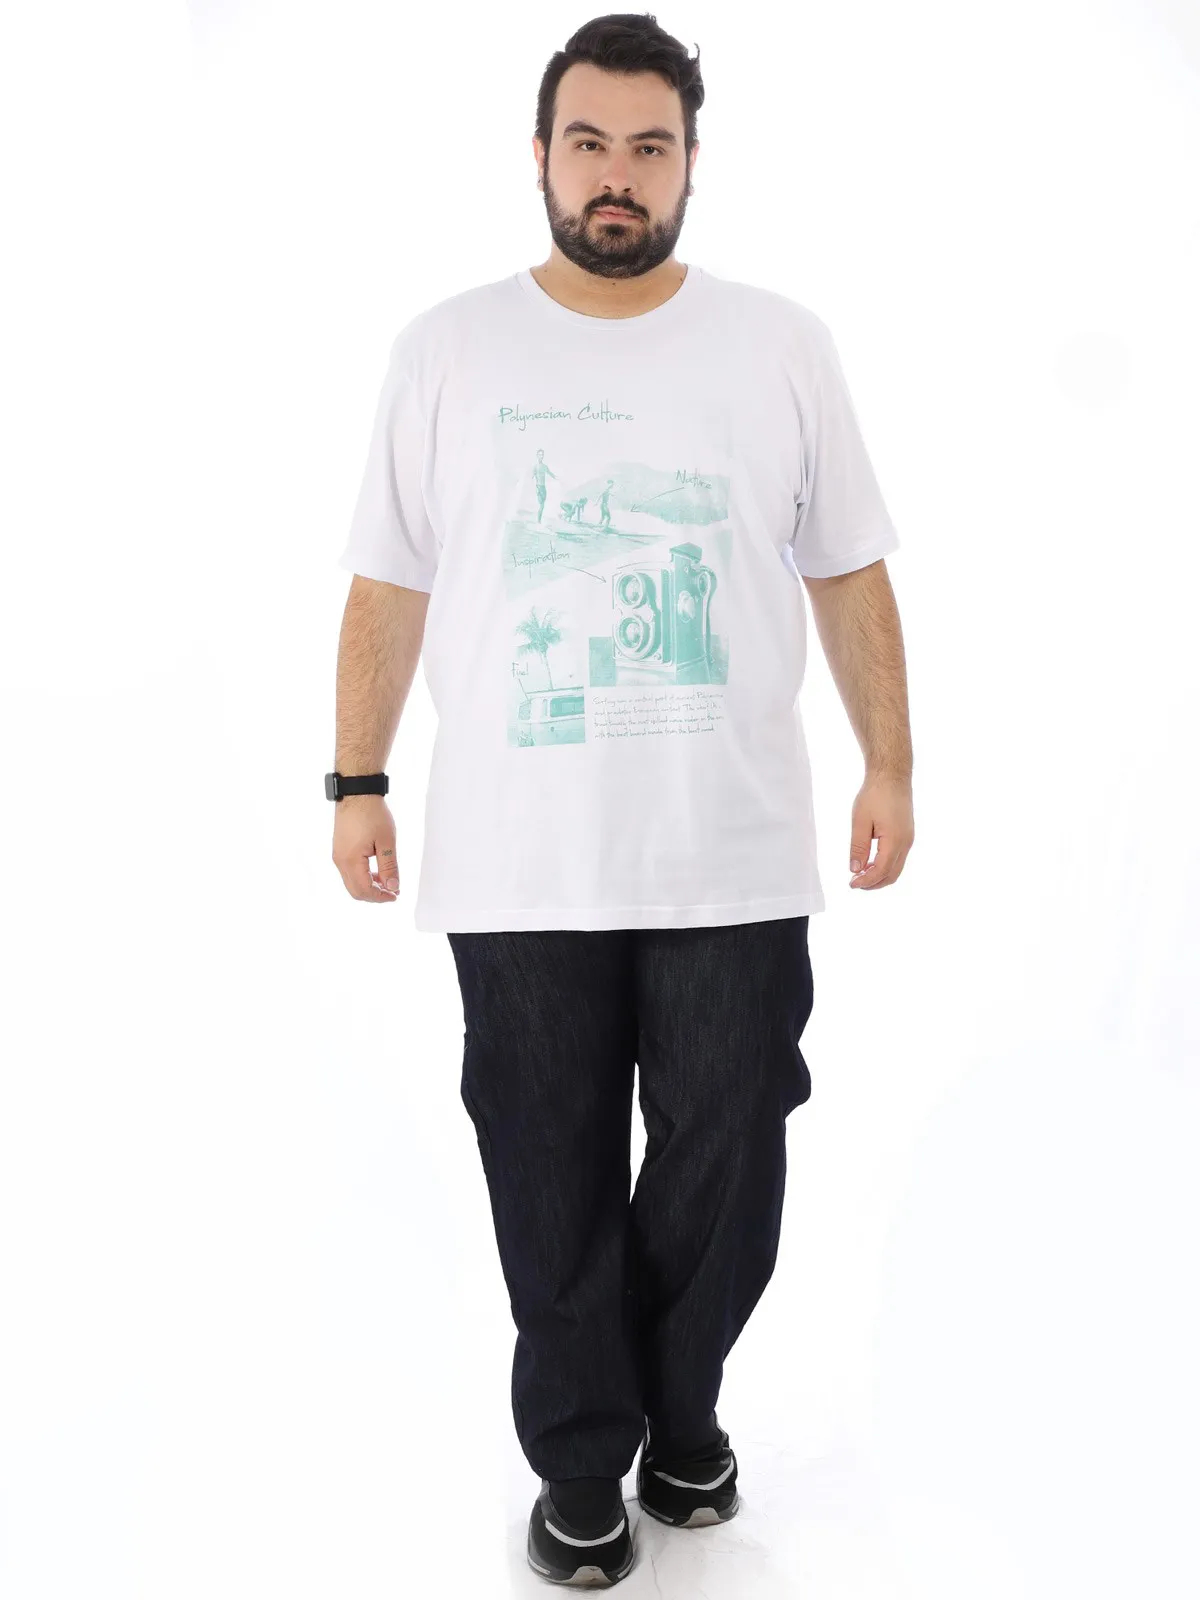 Camiseta Plus Size Masculino Estampa Gola Careca Branco